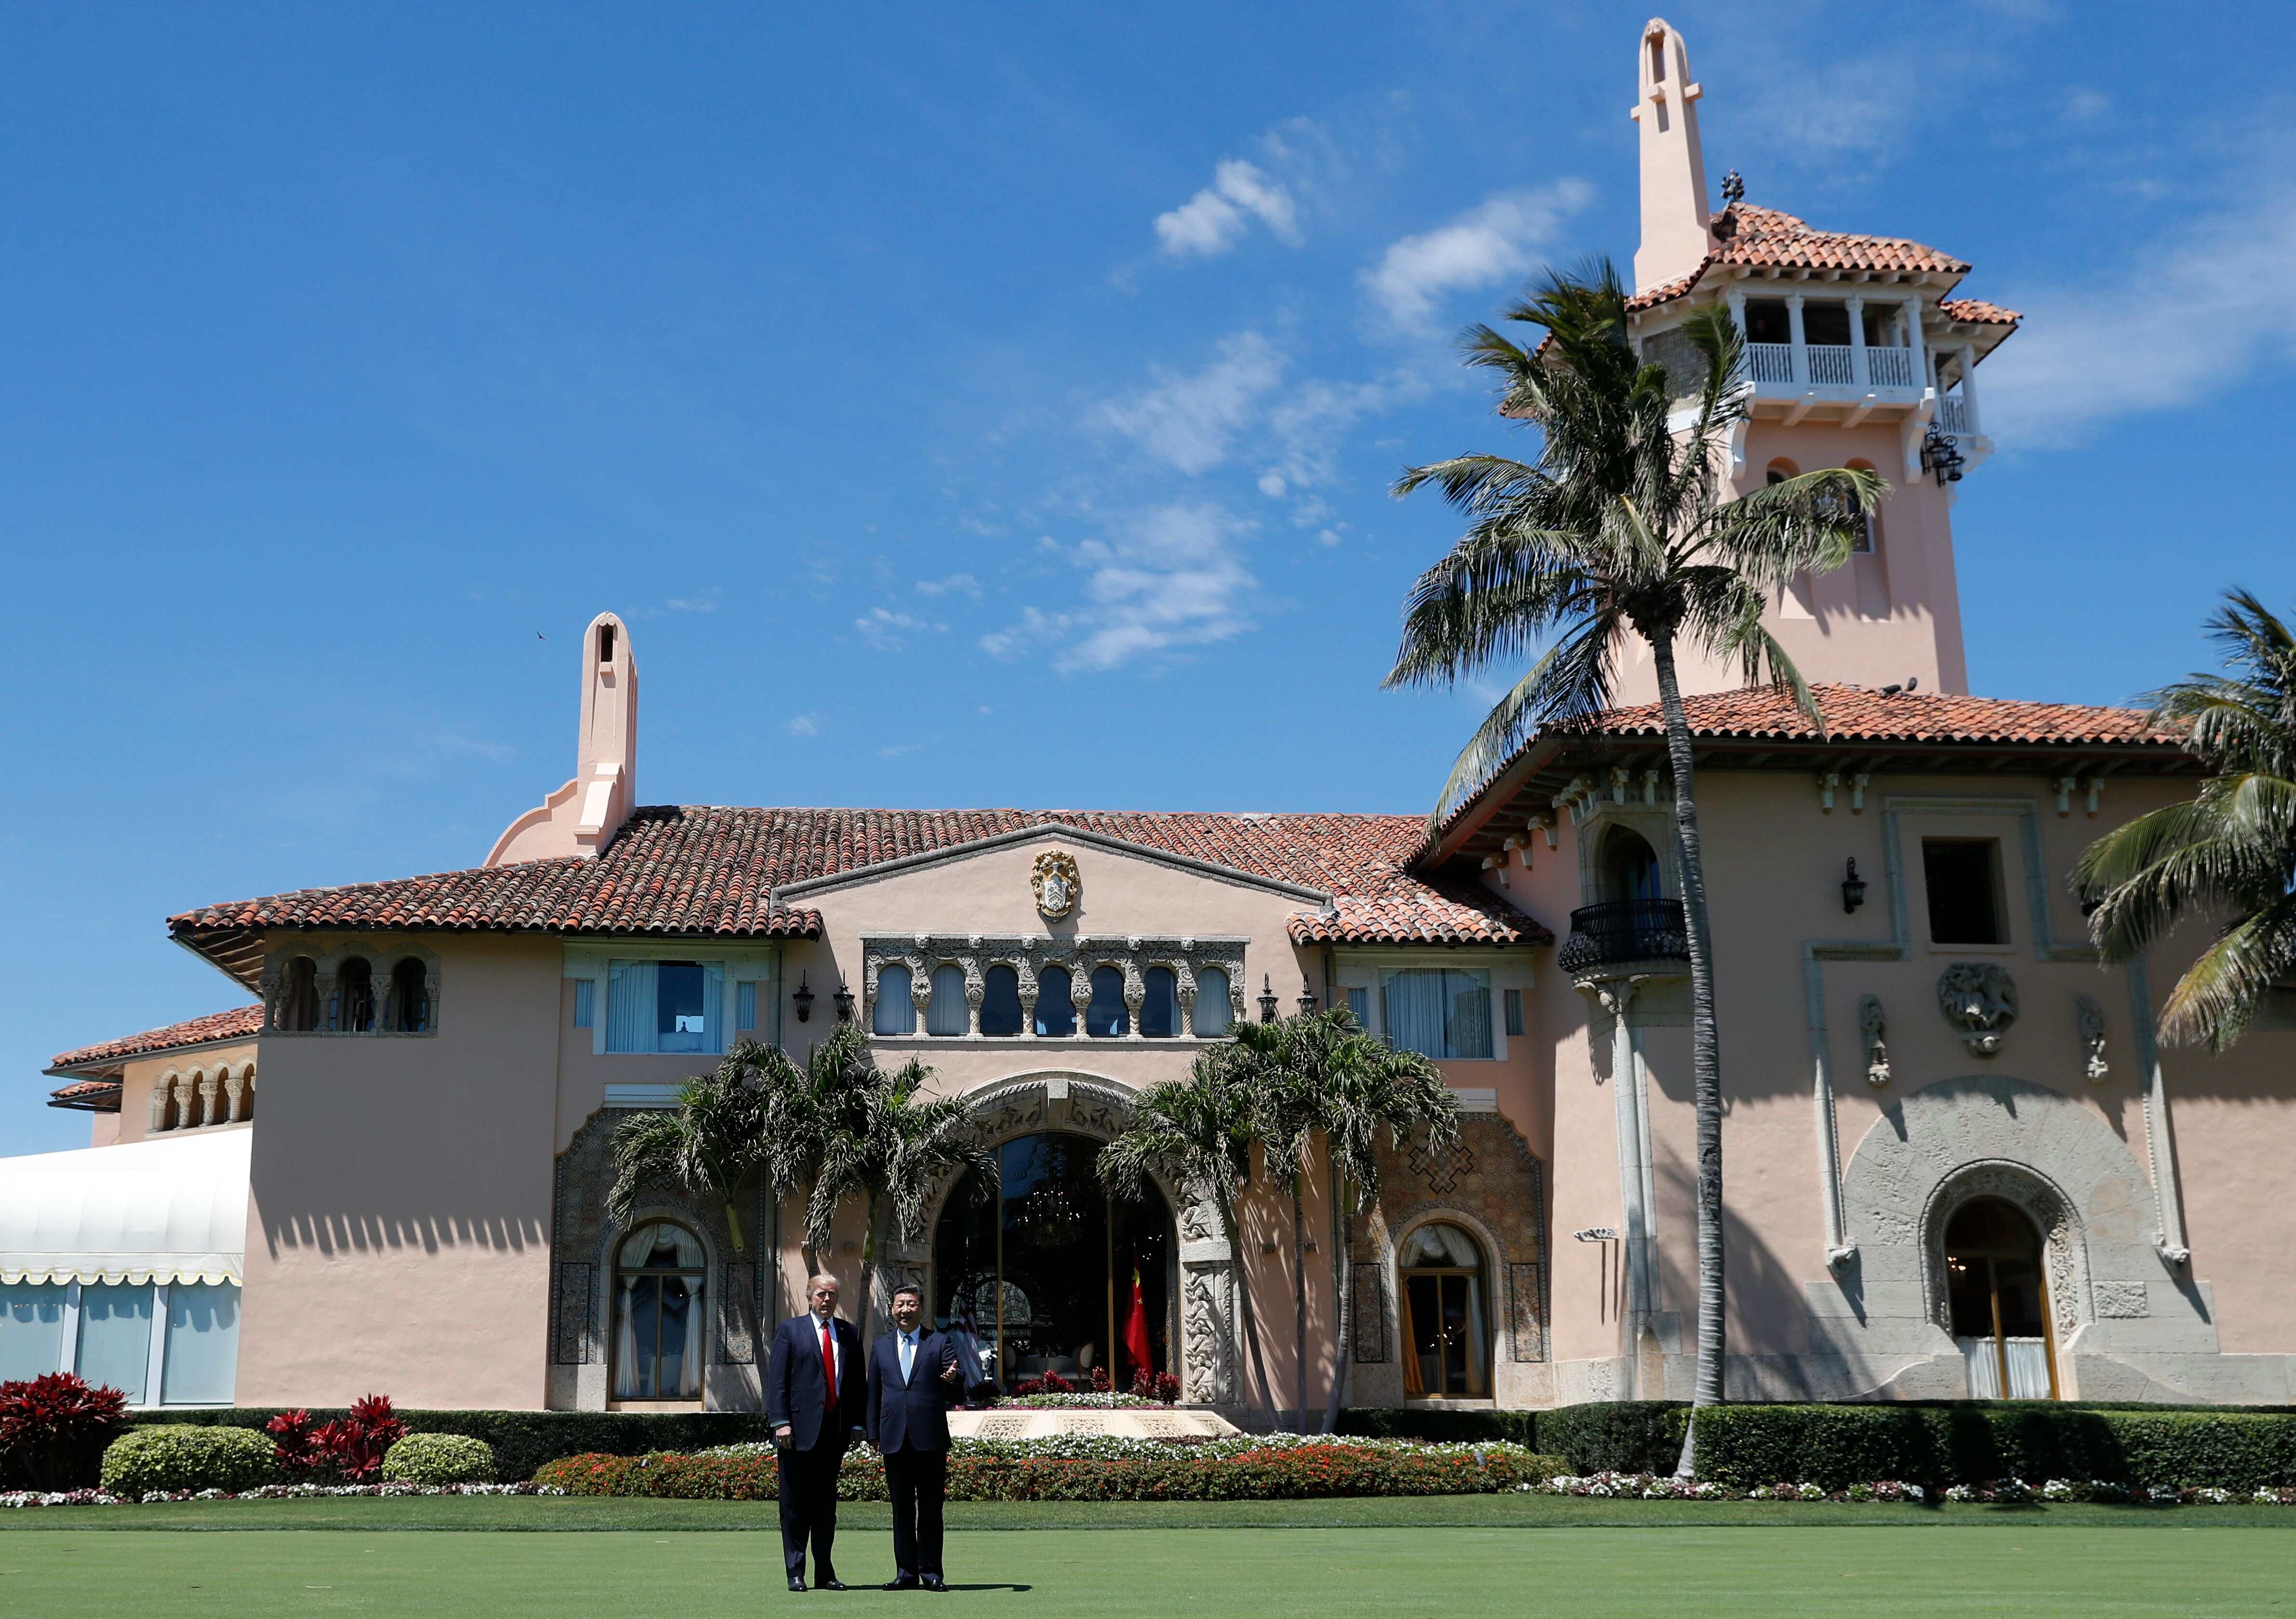 President Donald Trump and Chinese President Xi Jinping pause for photographs as they walk together at Mar-a-Lago, Friday, April 7, 2017, in Palm Beach, Fla. Trump was meeting again with his Chinese counterpart Friday, with U.S. missile strikes on Syria adding weight to his threat to act unilaterally against the nuclear weapons program of China's ally, North Korea. (AP Photo/Alex Brandon)